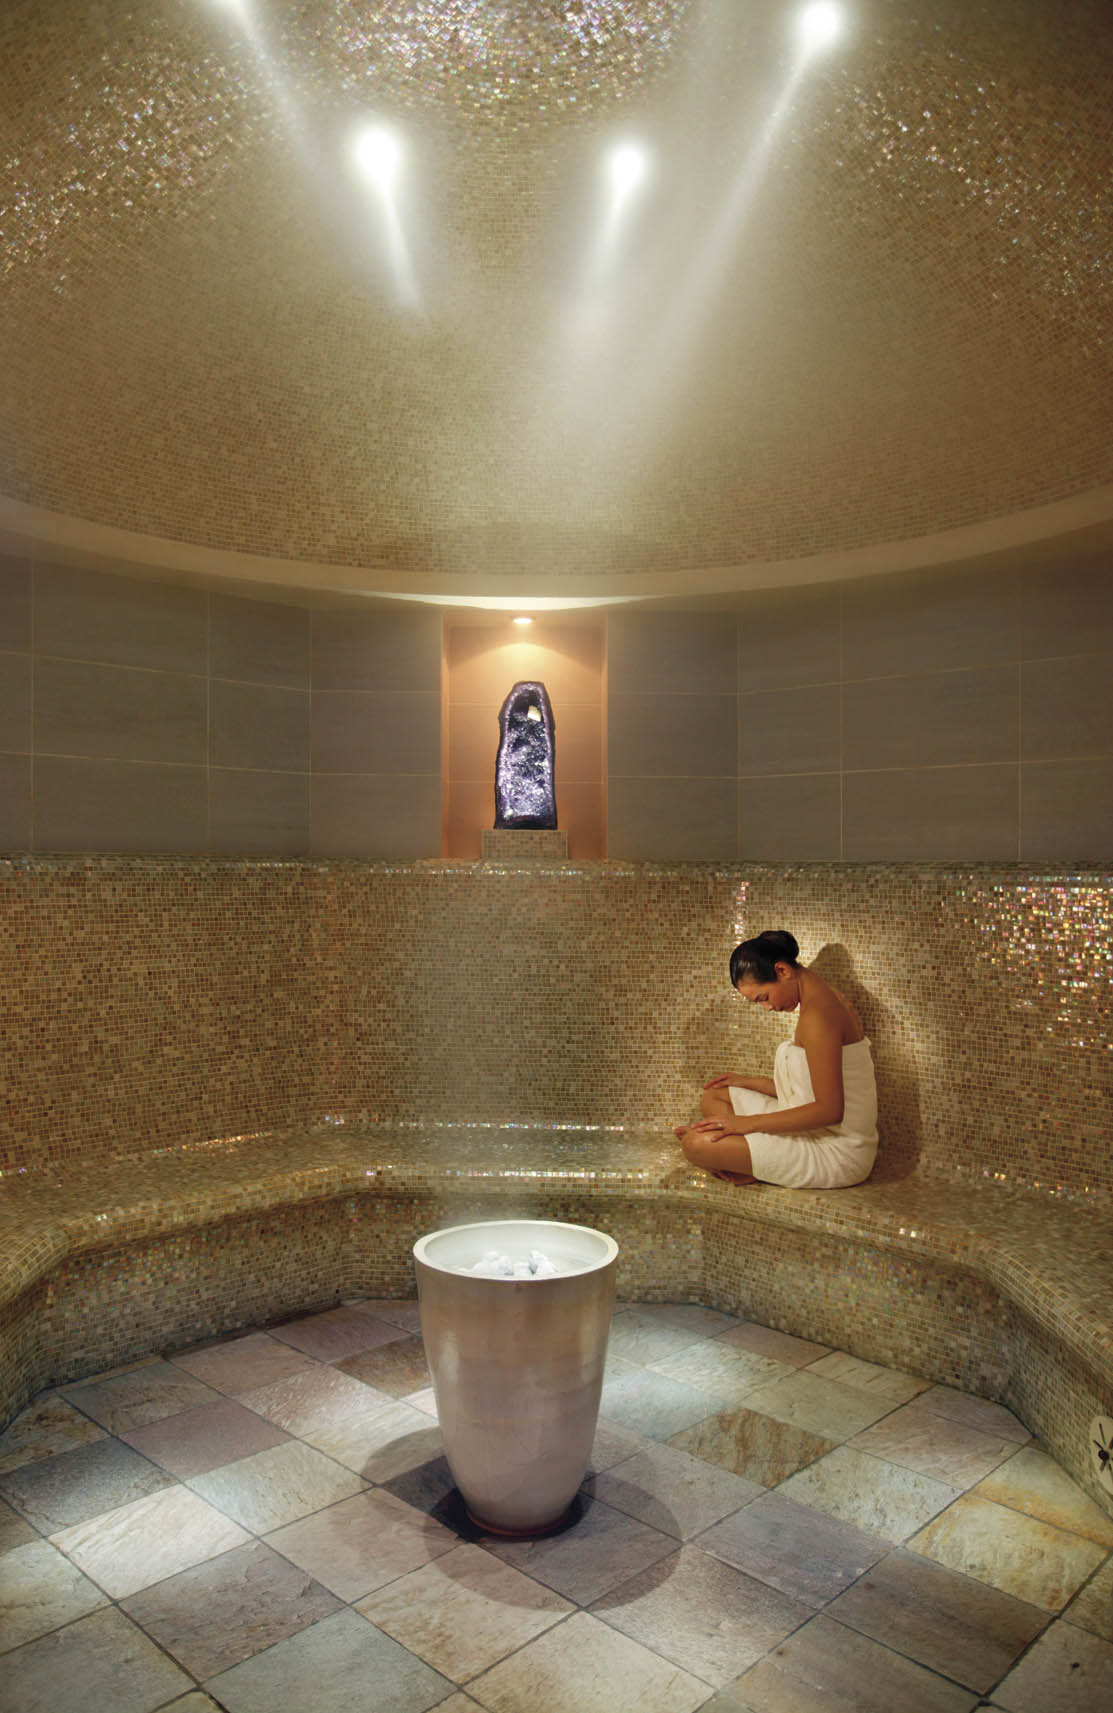 The 5 Star Spa at Mandarin Oriental New York Launches